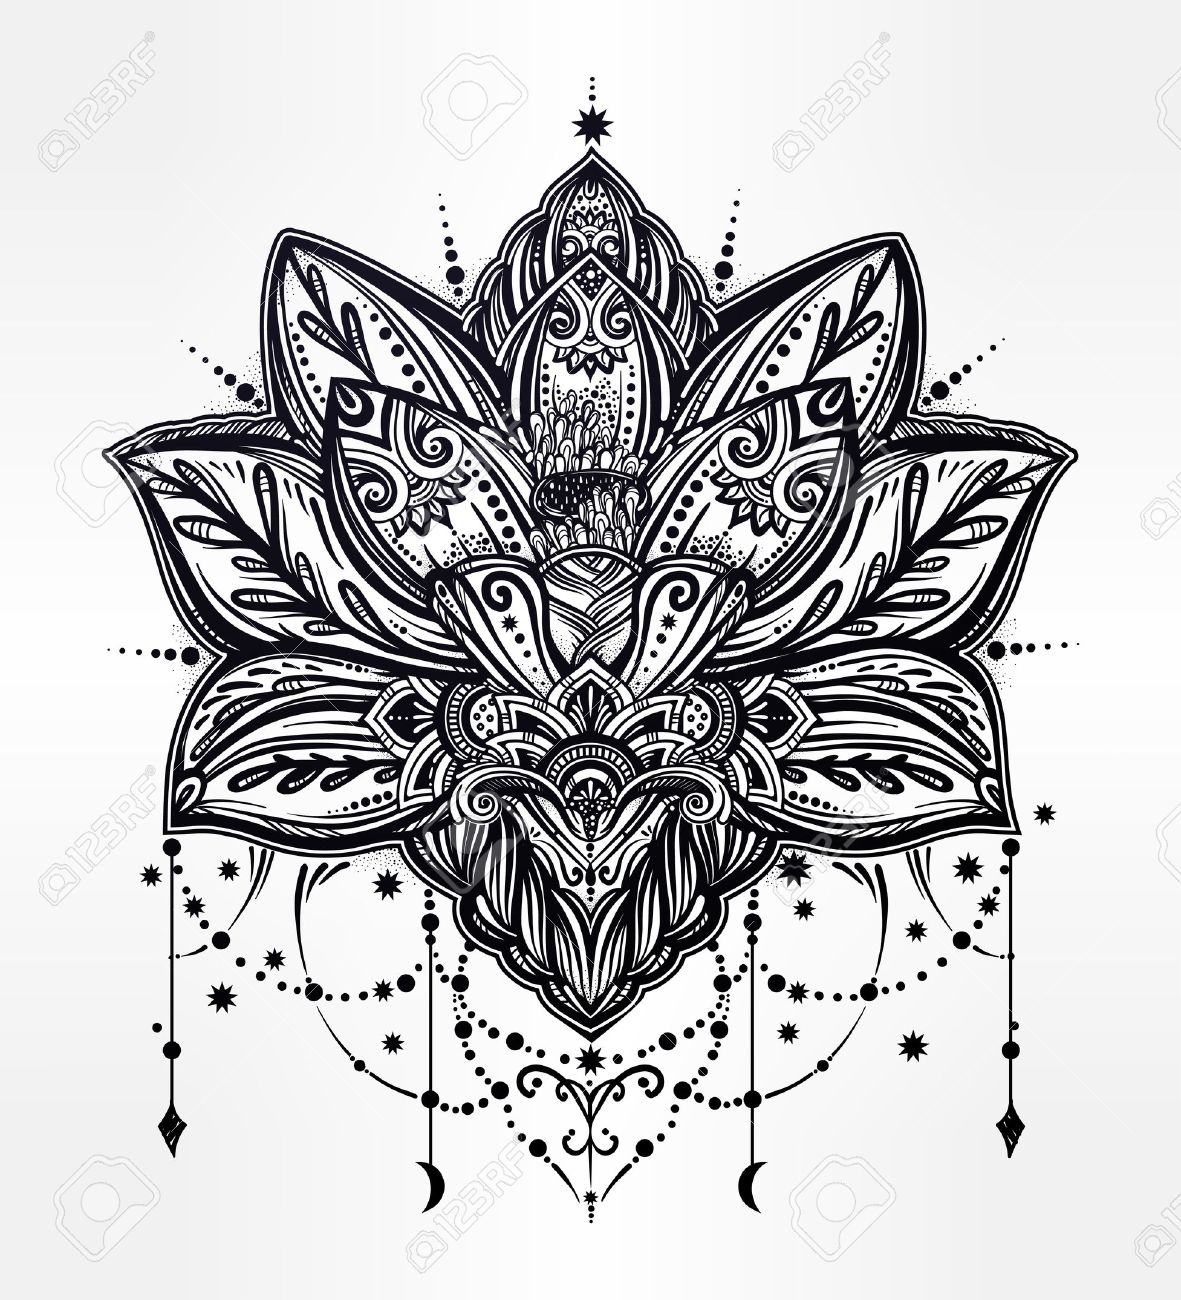 Vector ornamental Lotus flower, ethnic art, patterned Indian paisley. Hand drawn illustration. Invitation element. Tattoo, astrology, alchemy, boho and magic symbol. Banque d'images - 64034533